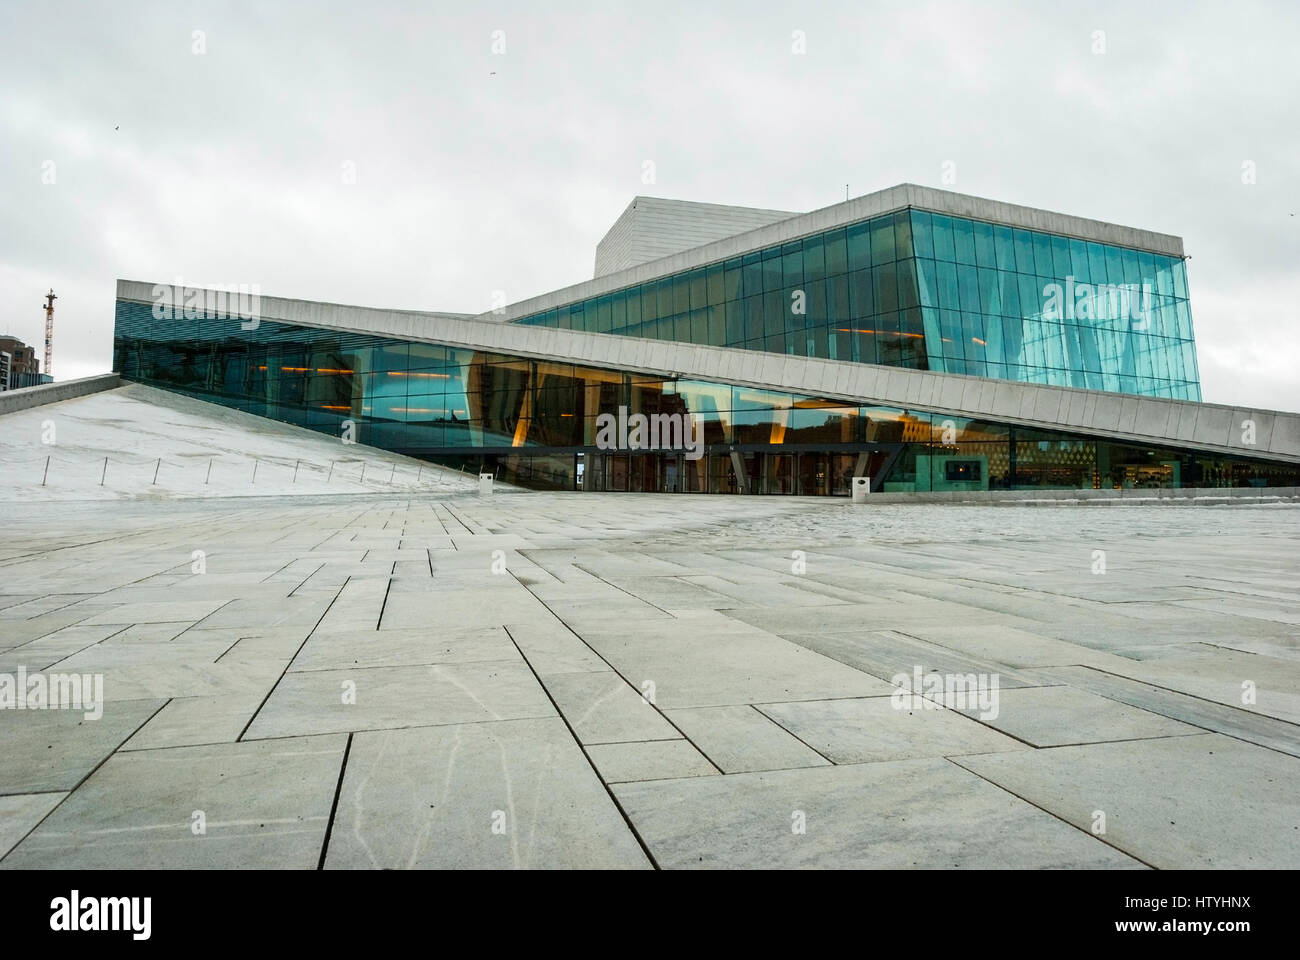 OSLO, NORWAY   JANUARY 28: Exterior Of Oslo Opera House Desiged By Snohetta  And Build In 2007. Opera House Is The Home Of National Opera And Ballet. T